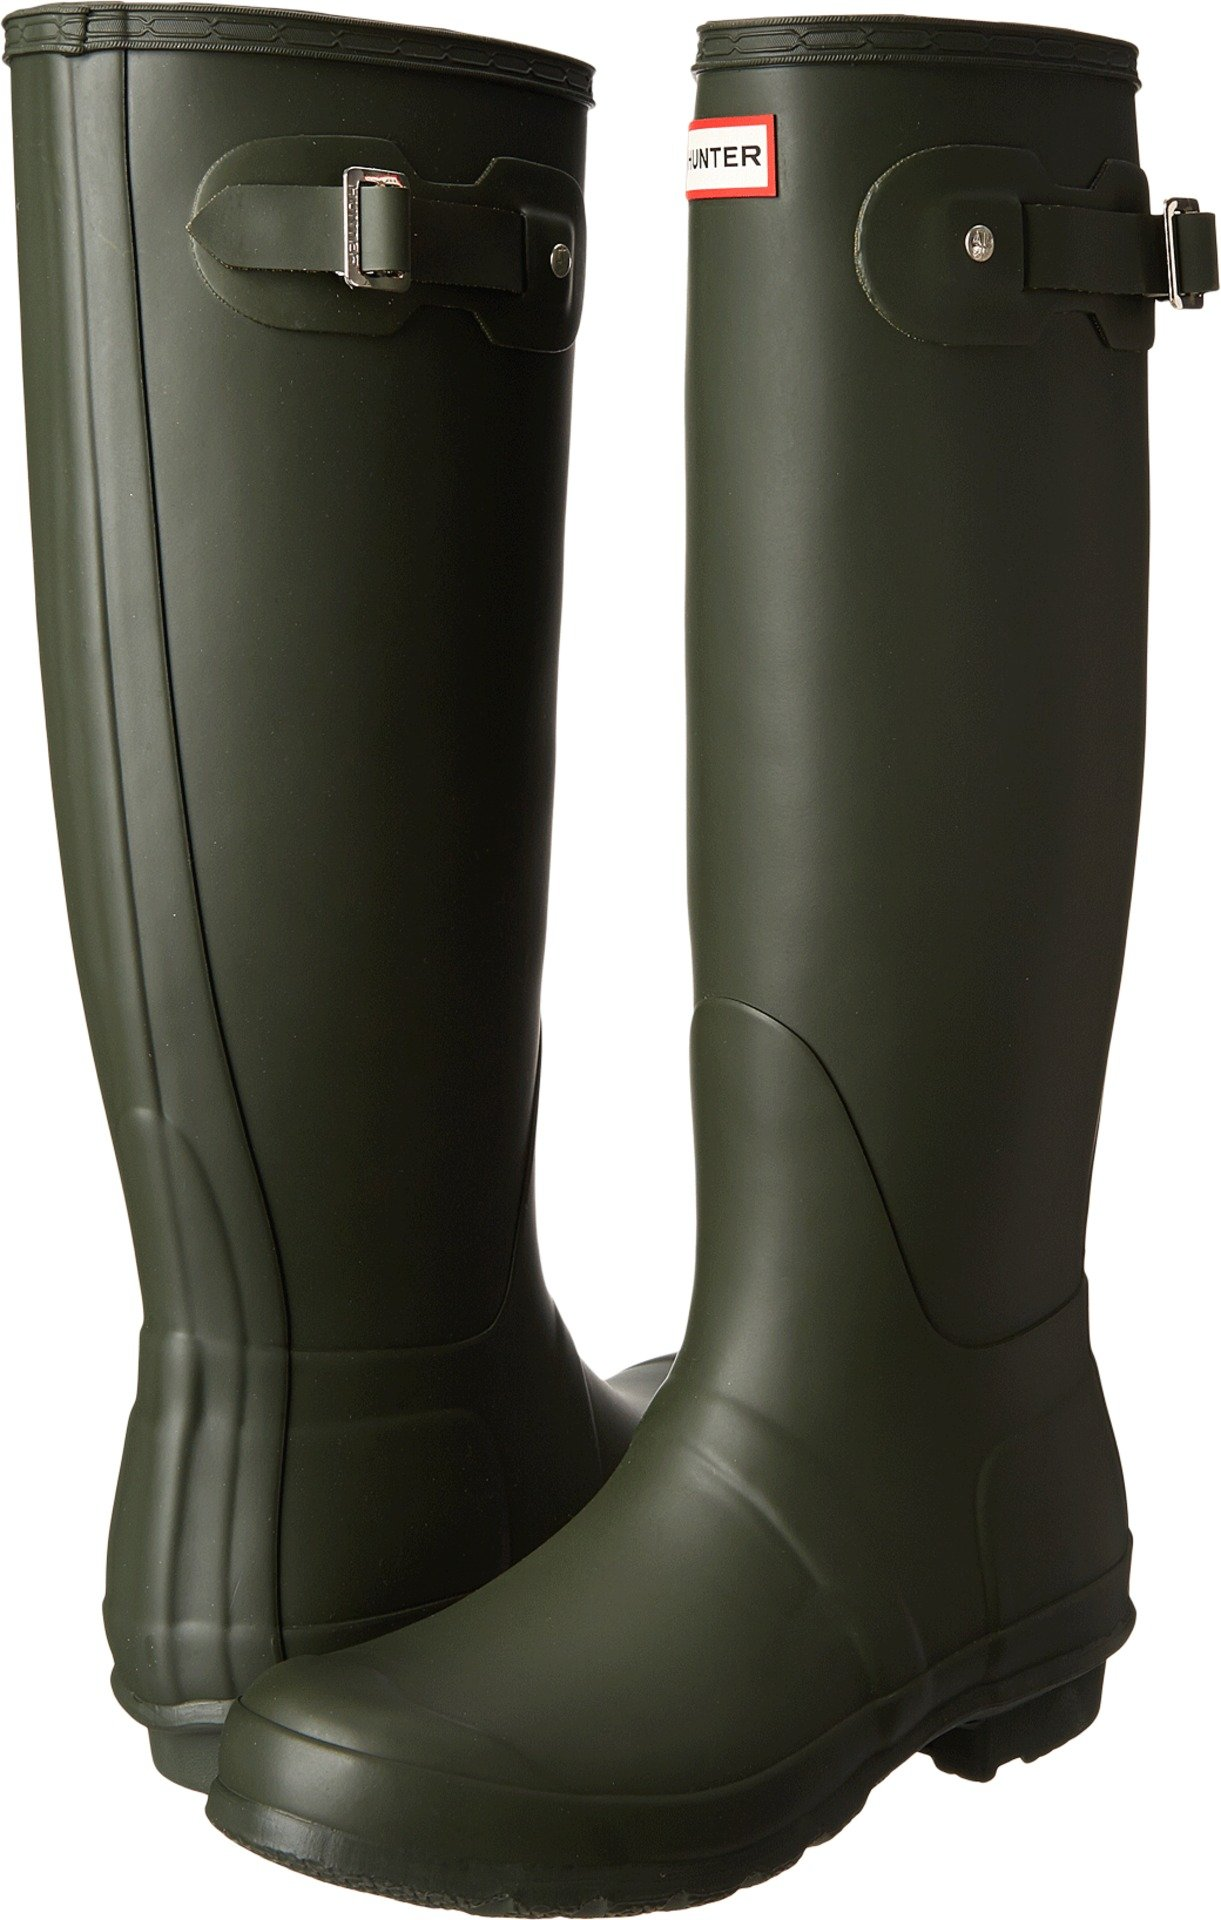 Hunter Women's Original Tall Dark Olive Rain Boots - 9 B(M) US by Hunter